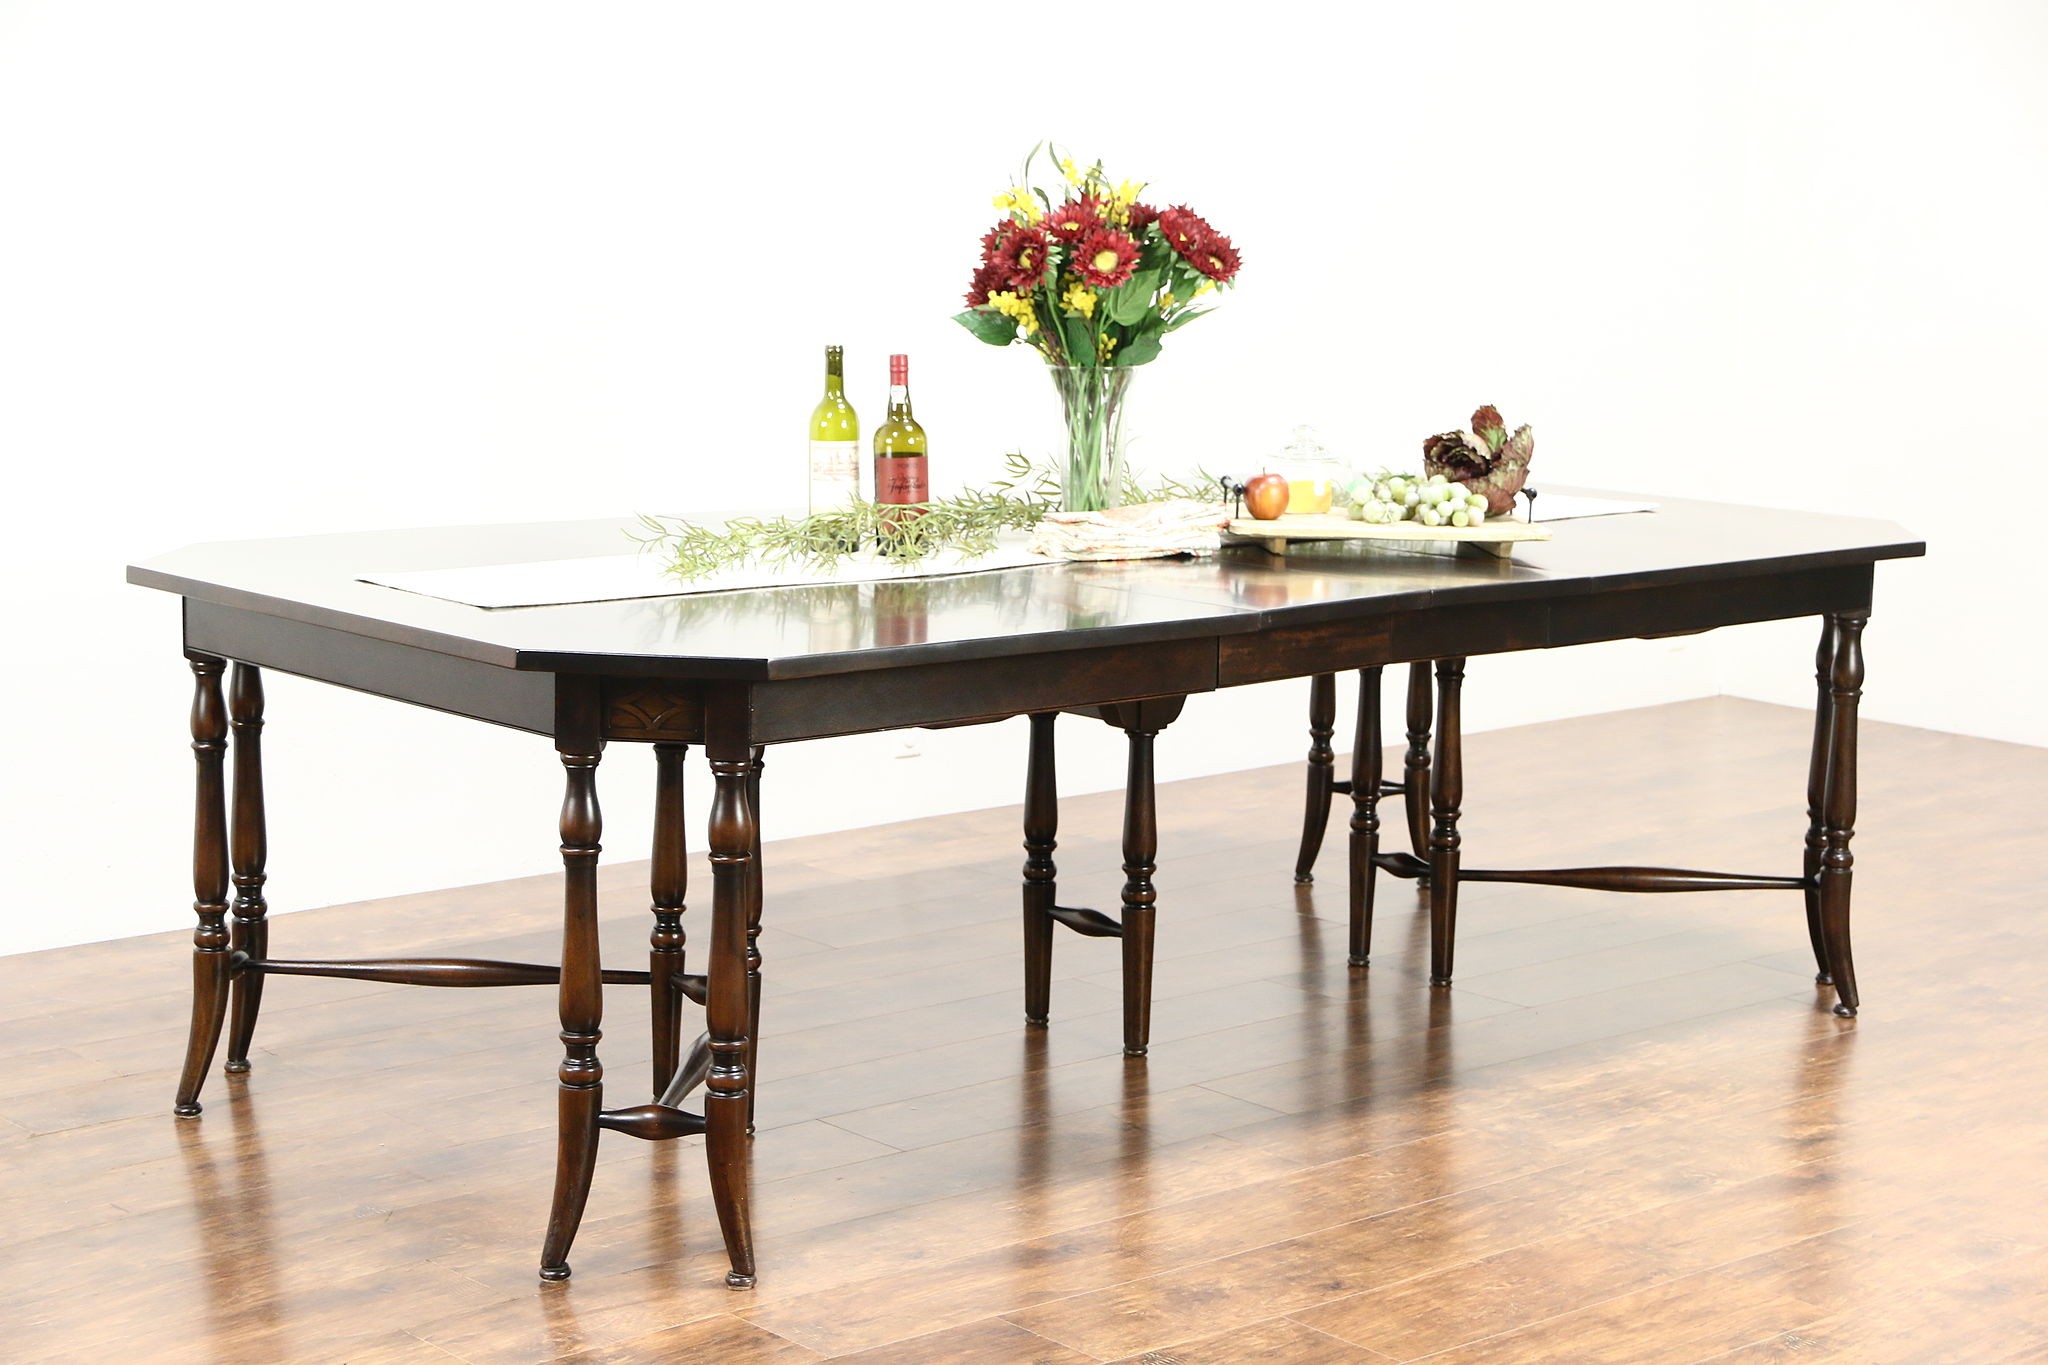 Scandinavian Antique 1900 Dining Table, 9 Leaves, ...